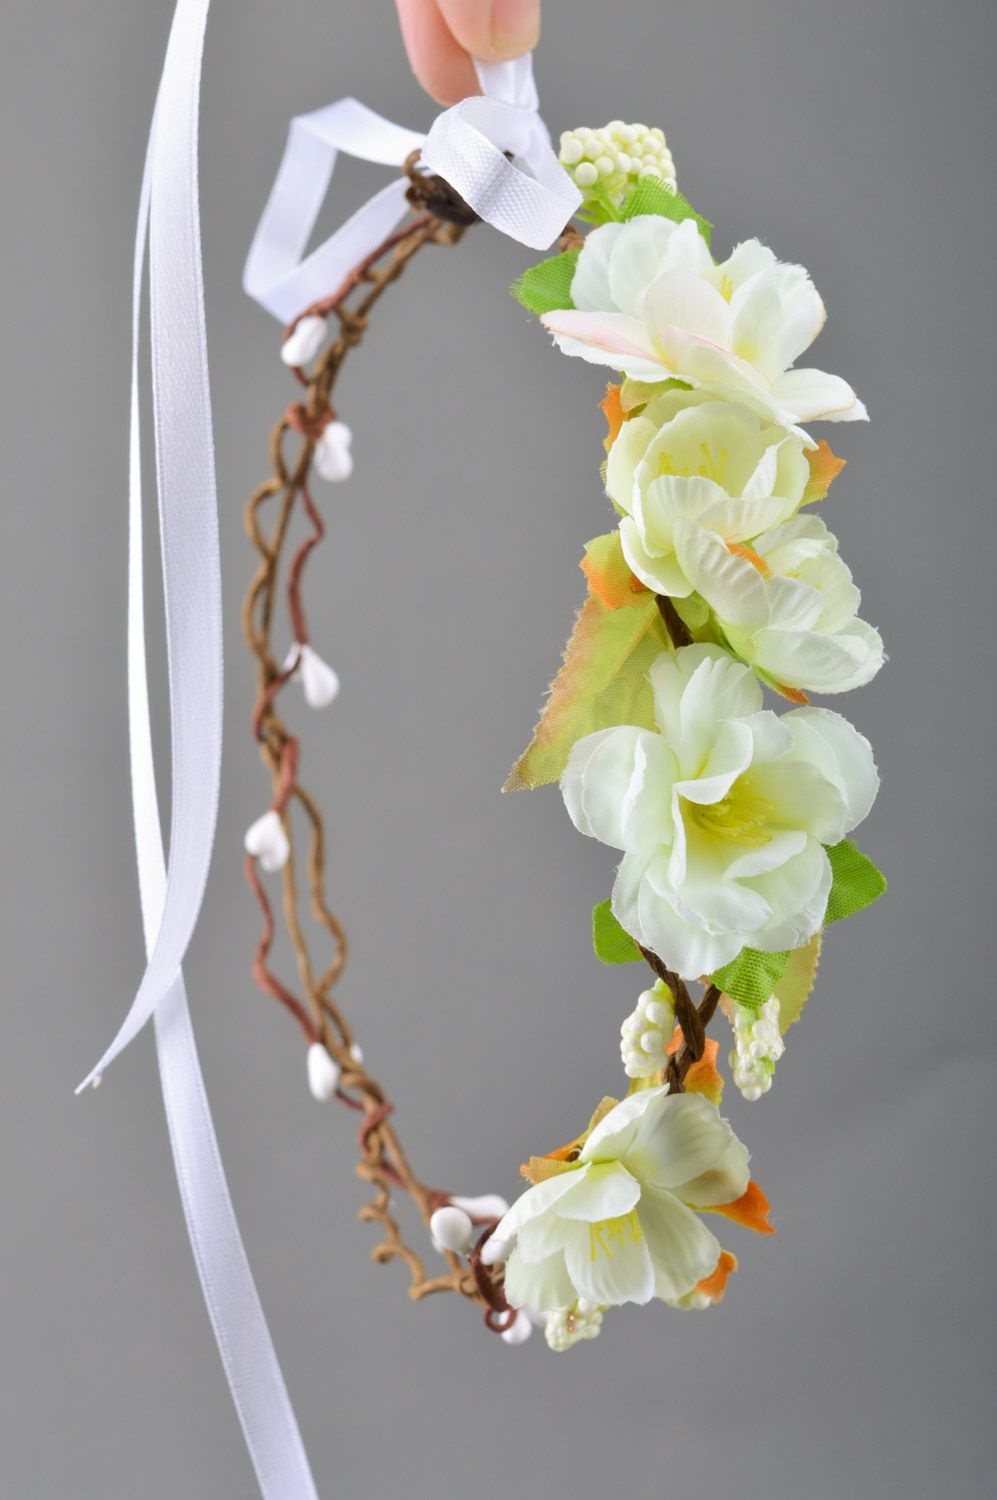 headbands and wreaths Tender homemade headband with artificial white  flowers Cherry Blossom - MADEheart.com 94eb0c6be36